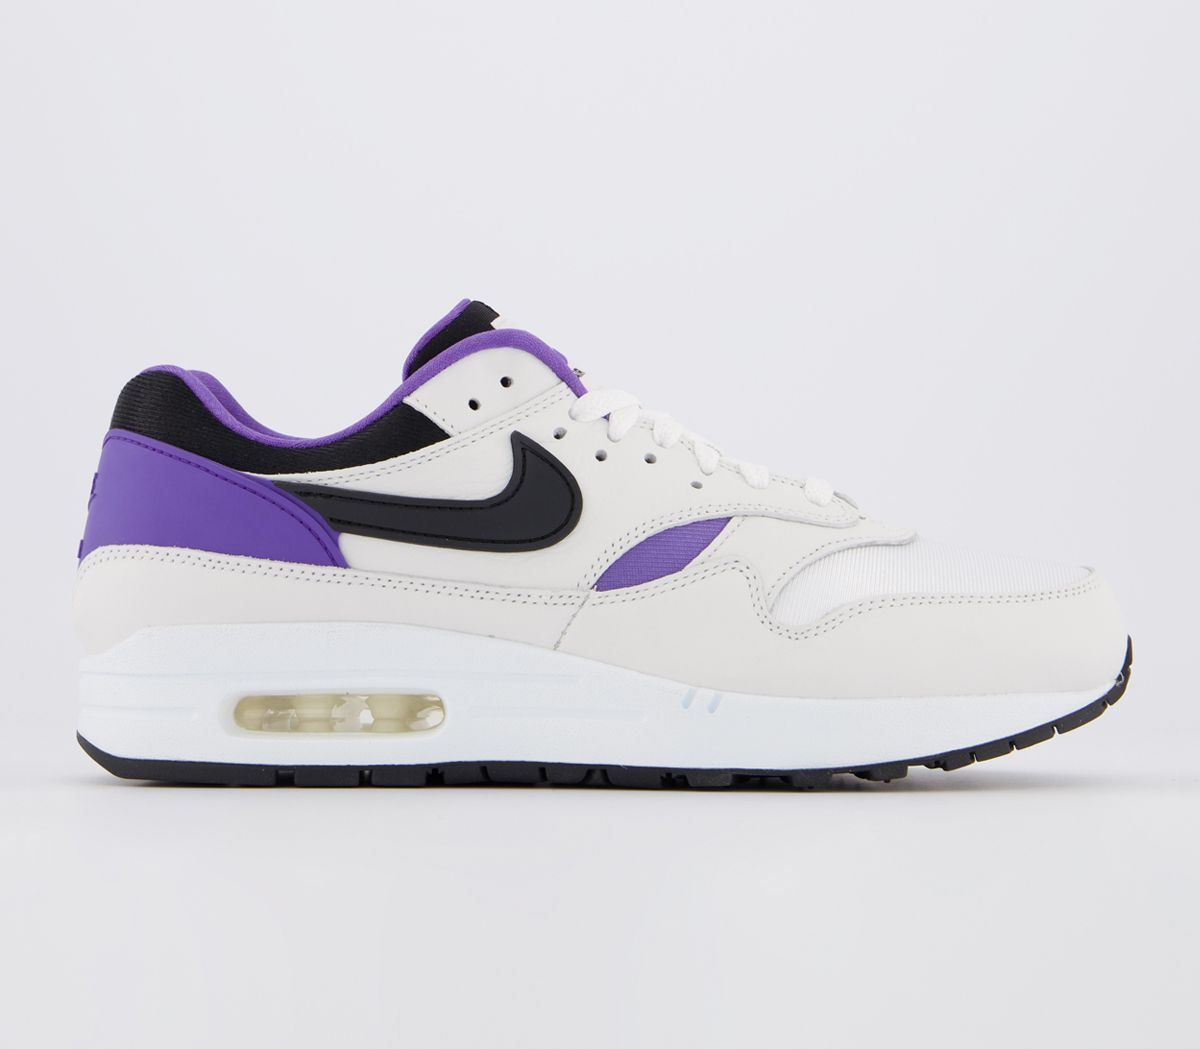 Nike Air Max 1 Trainers Trainers Unisex Dna White Black Purple Punch 2014415487